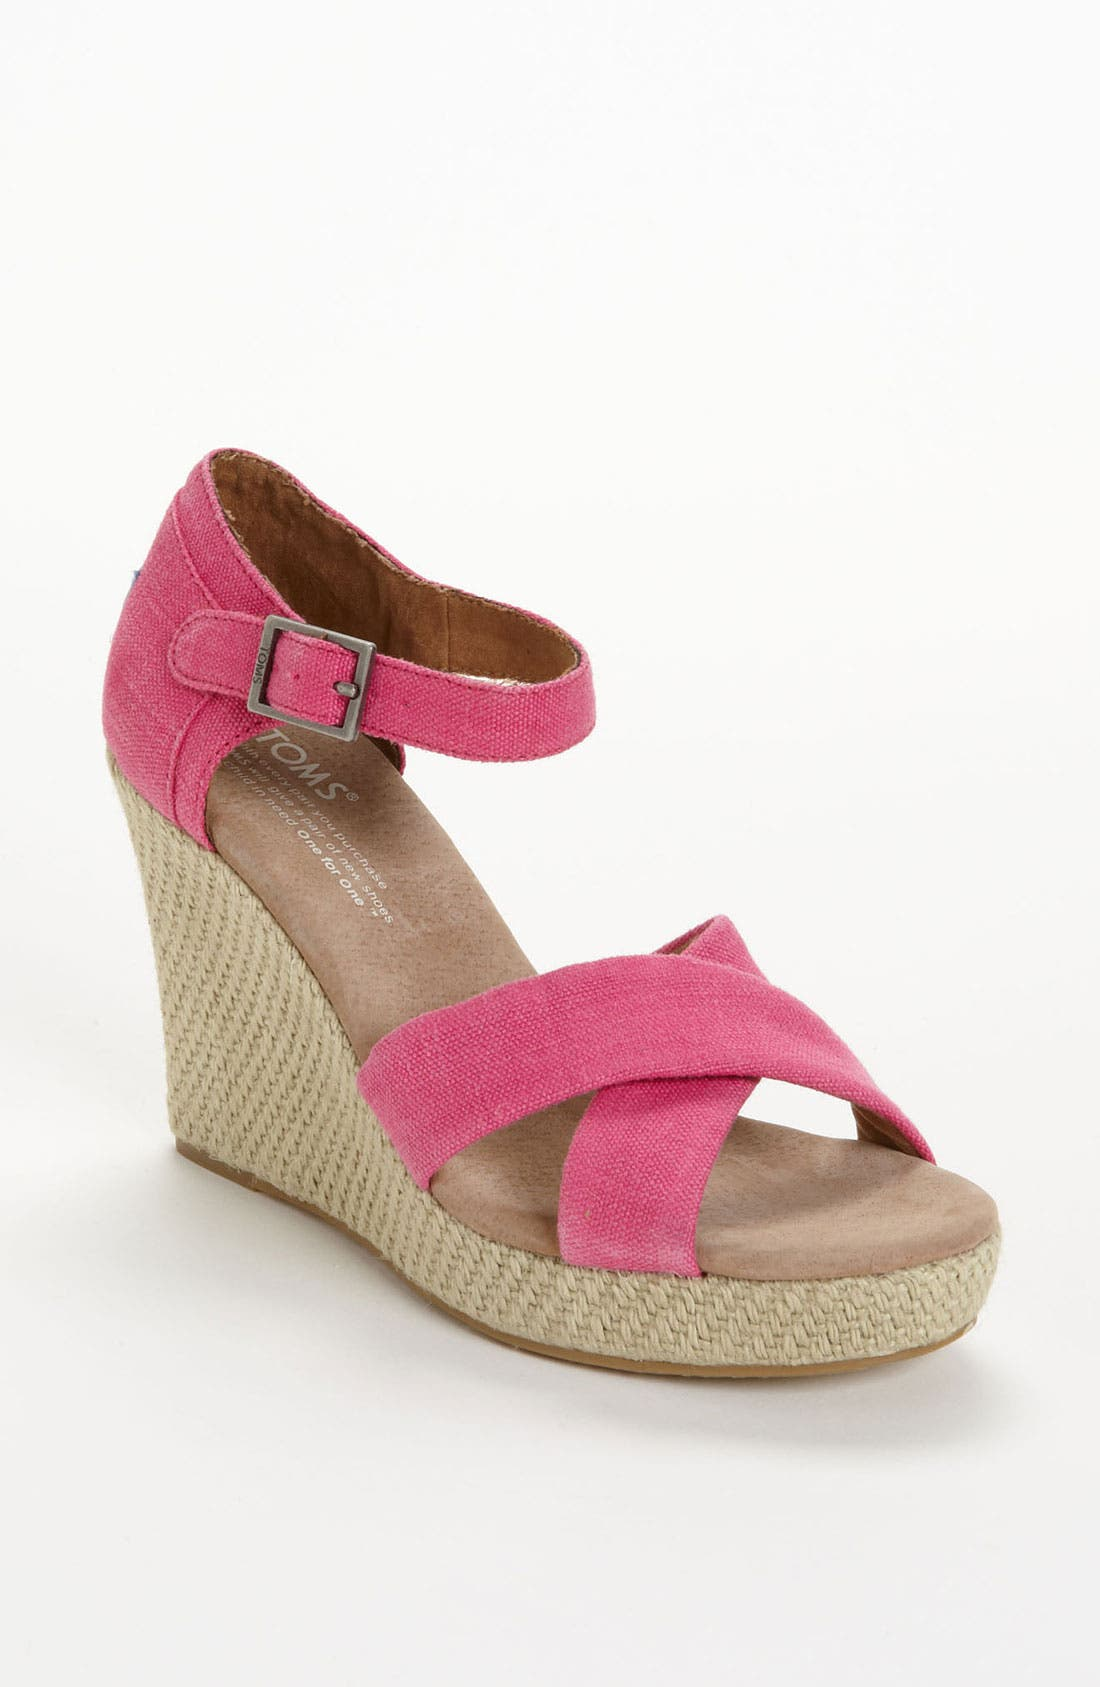 Main Image - TOMS Hemp Wedge Sandal